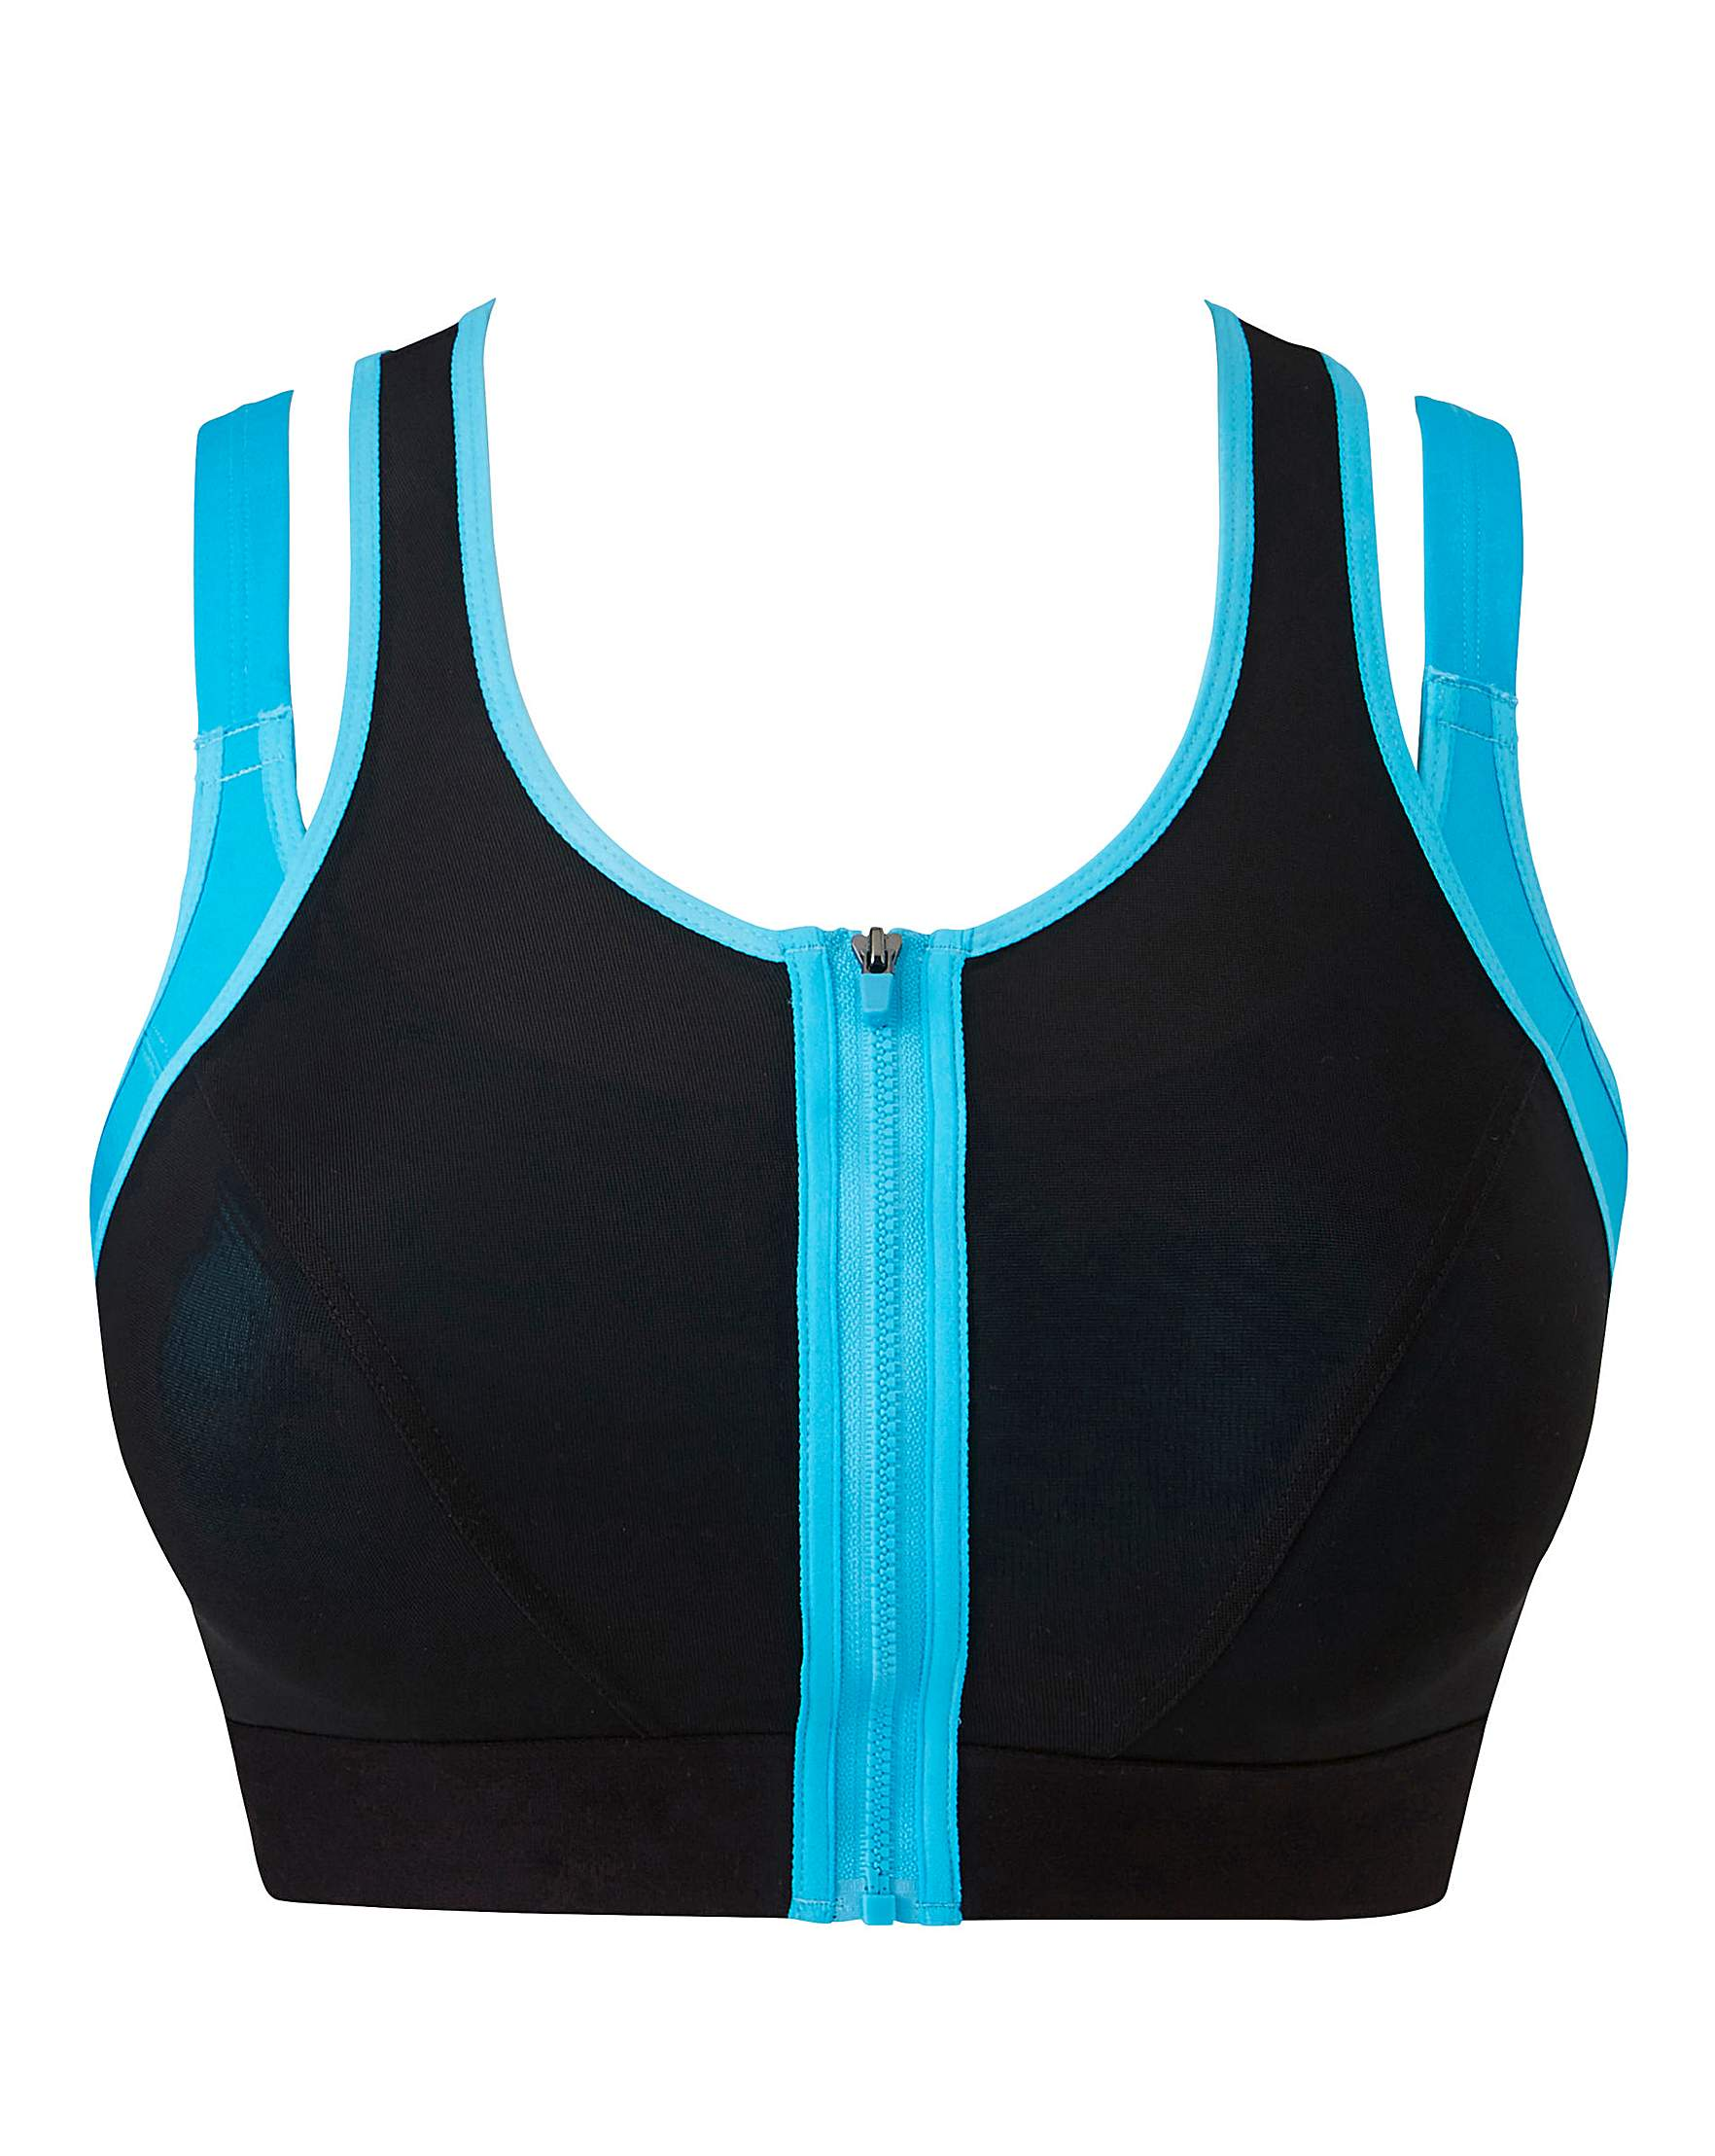 High Impact Layered Zip Front Sports Bra   Simply Be